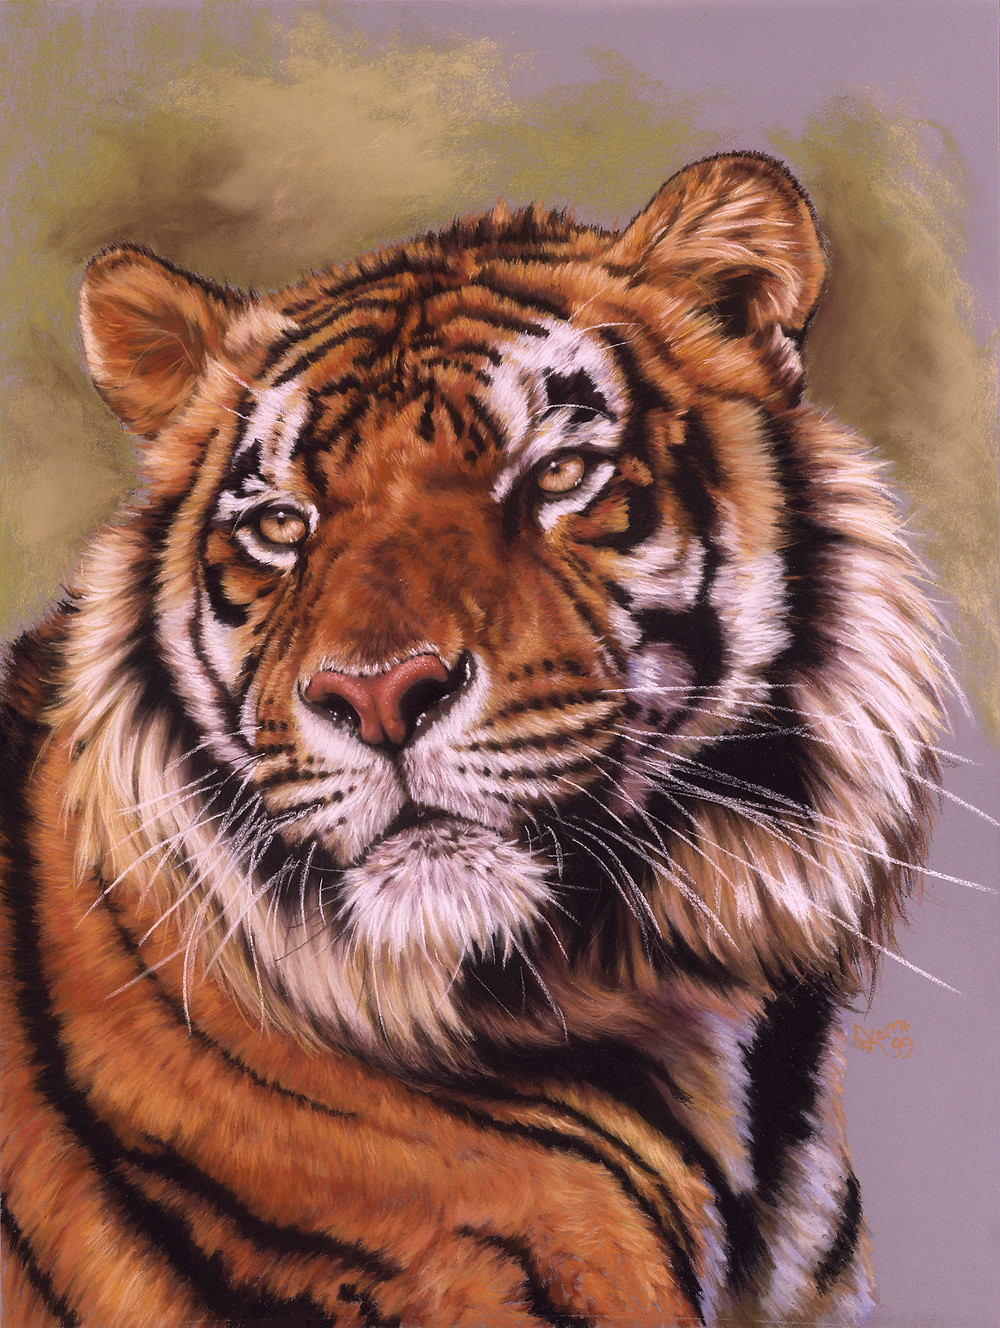 (portrait of a bengal tiger) 18x24 pastel. Original sold.